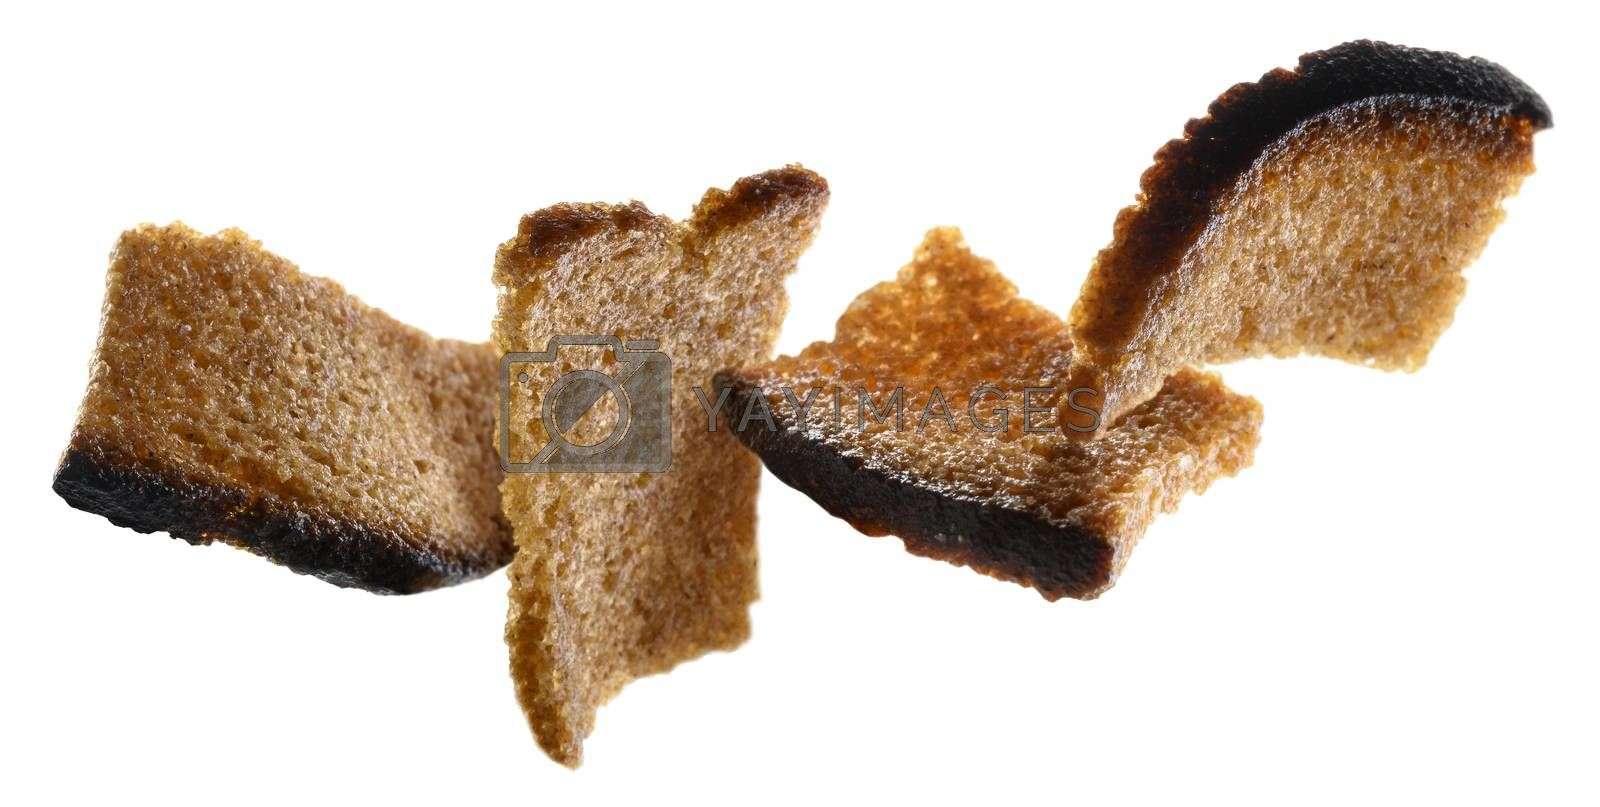 Rye croutons levitate on a white background.